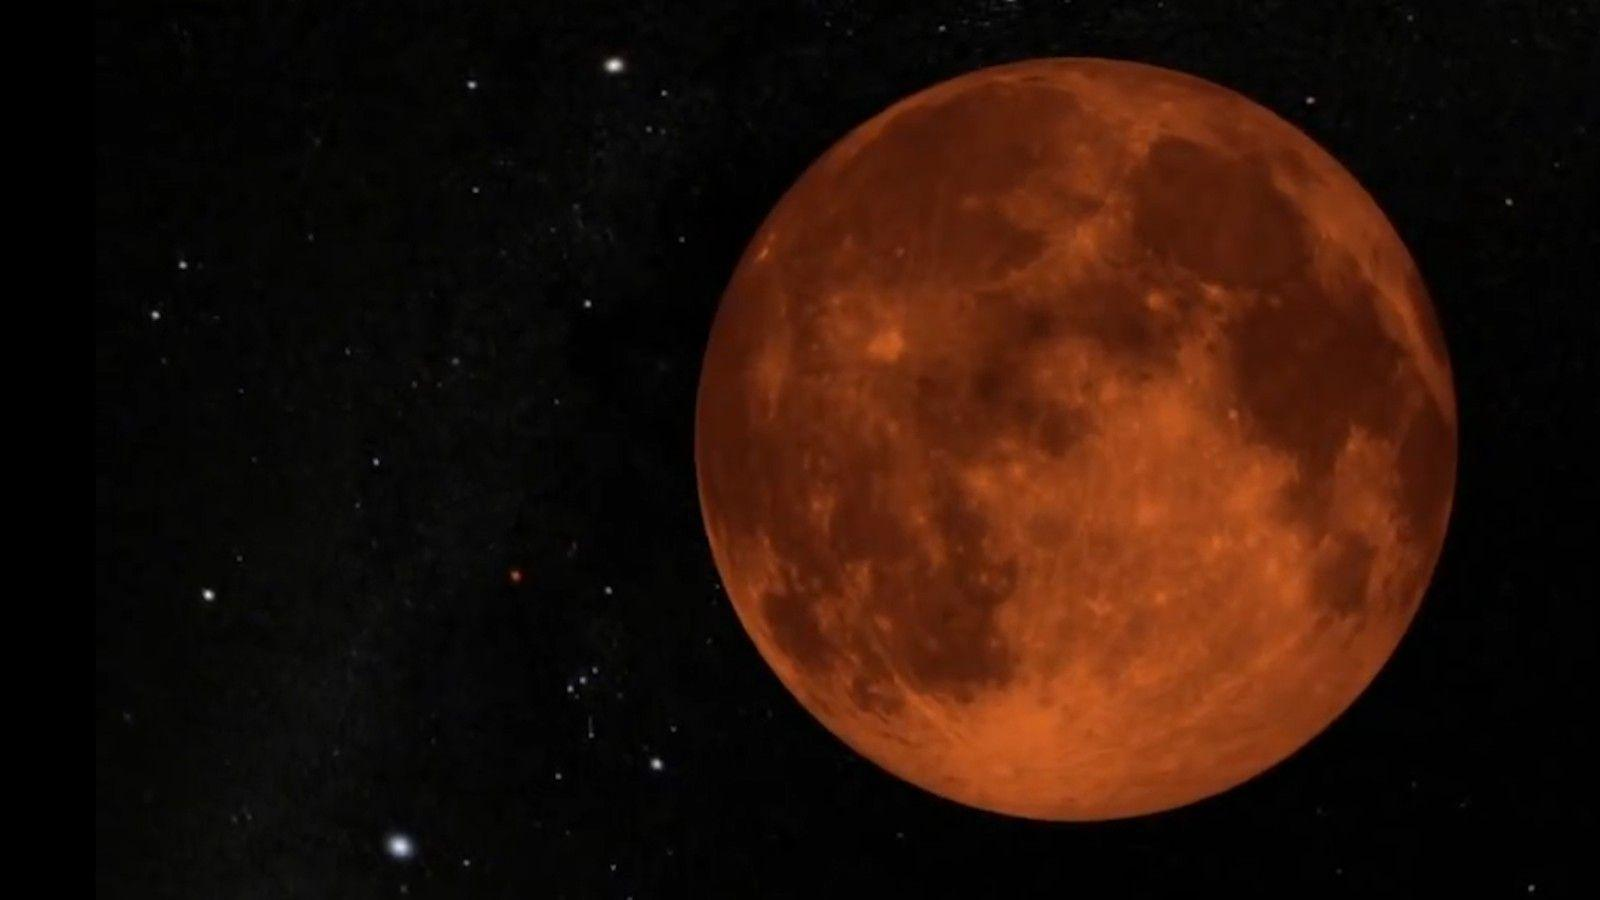 Sunday's 'super blood moon'; should we fear it? - CNN